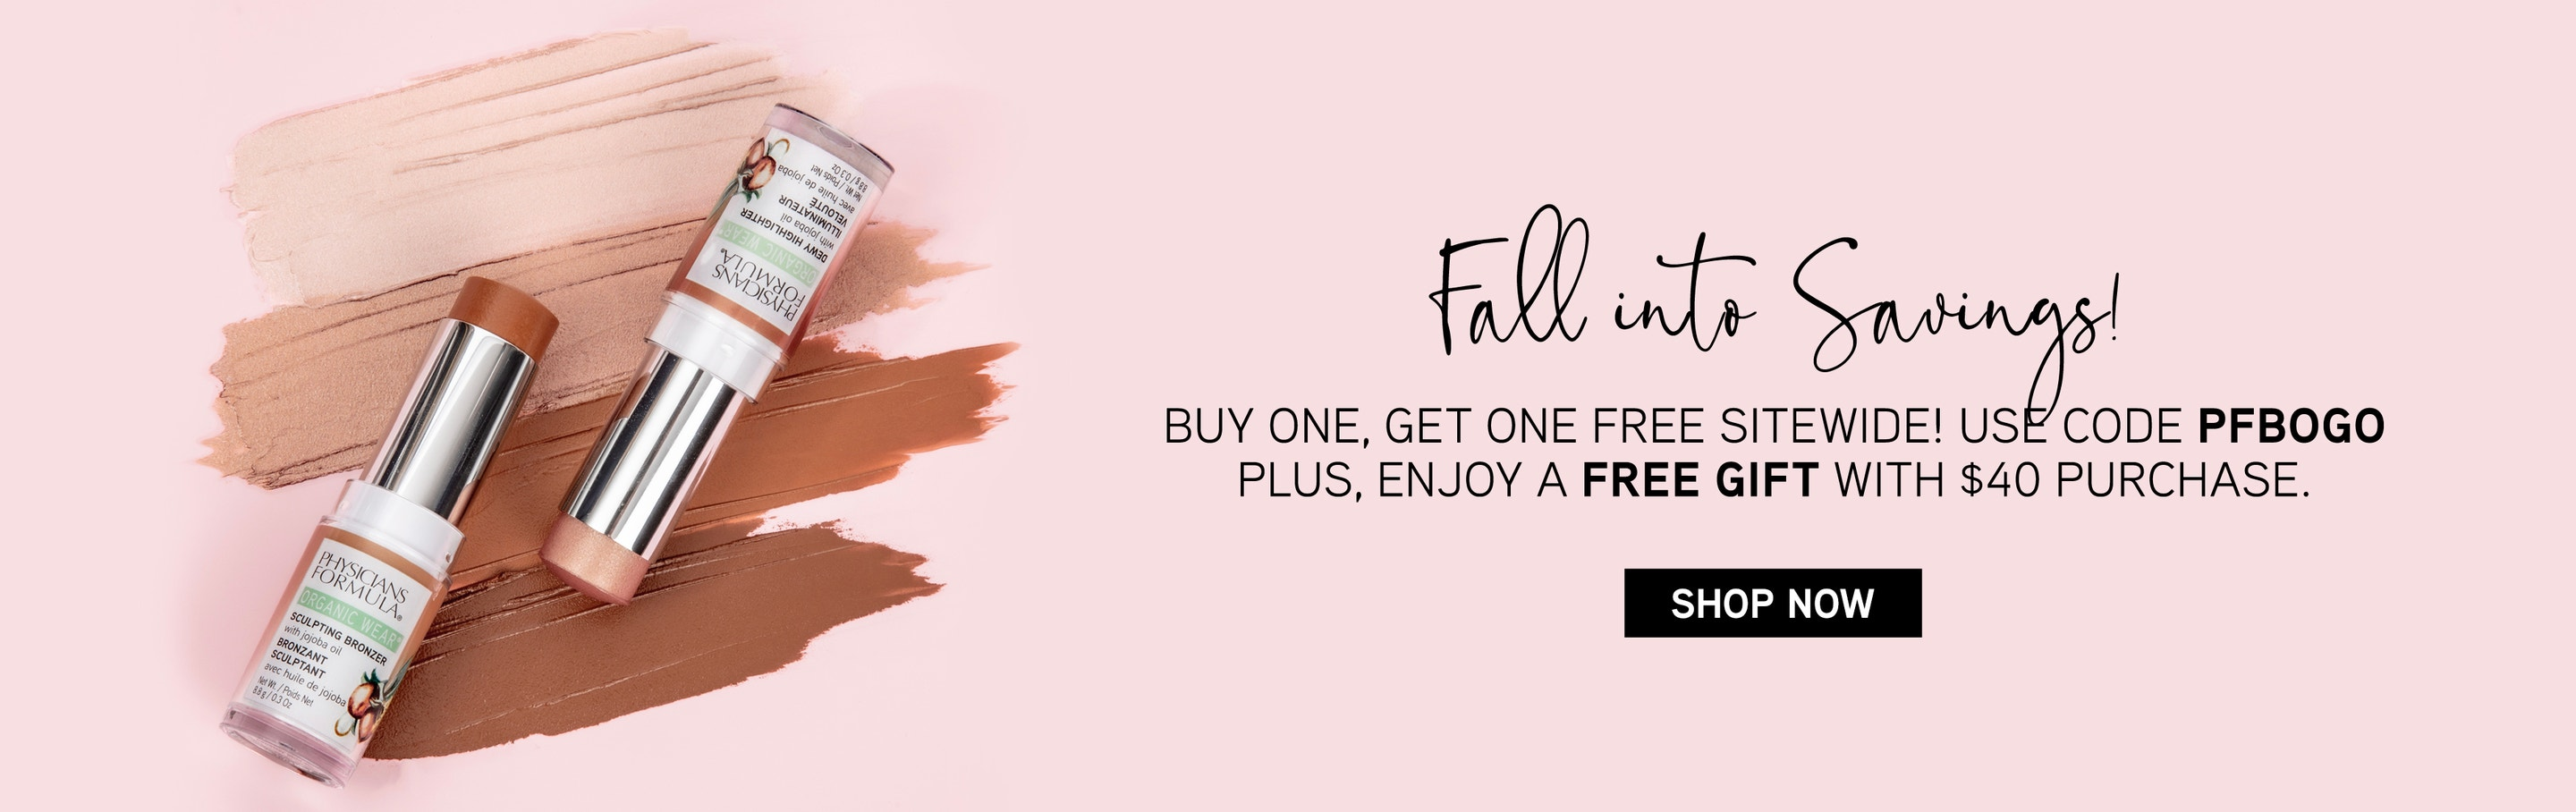 Physicians Formula | Fall into Savings! BOGO Sitewide! Use Code: PFBOGO + Free Gift! Save up to 50% on your favorite bronzers, blush and more! Product angled with cap removed, with swatches and pink background